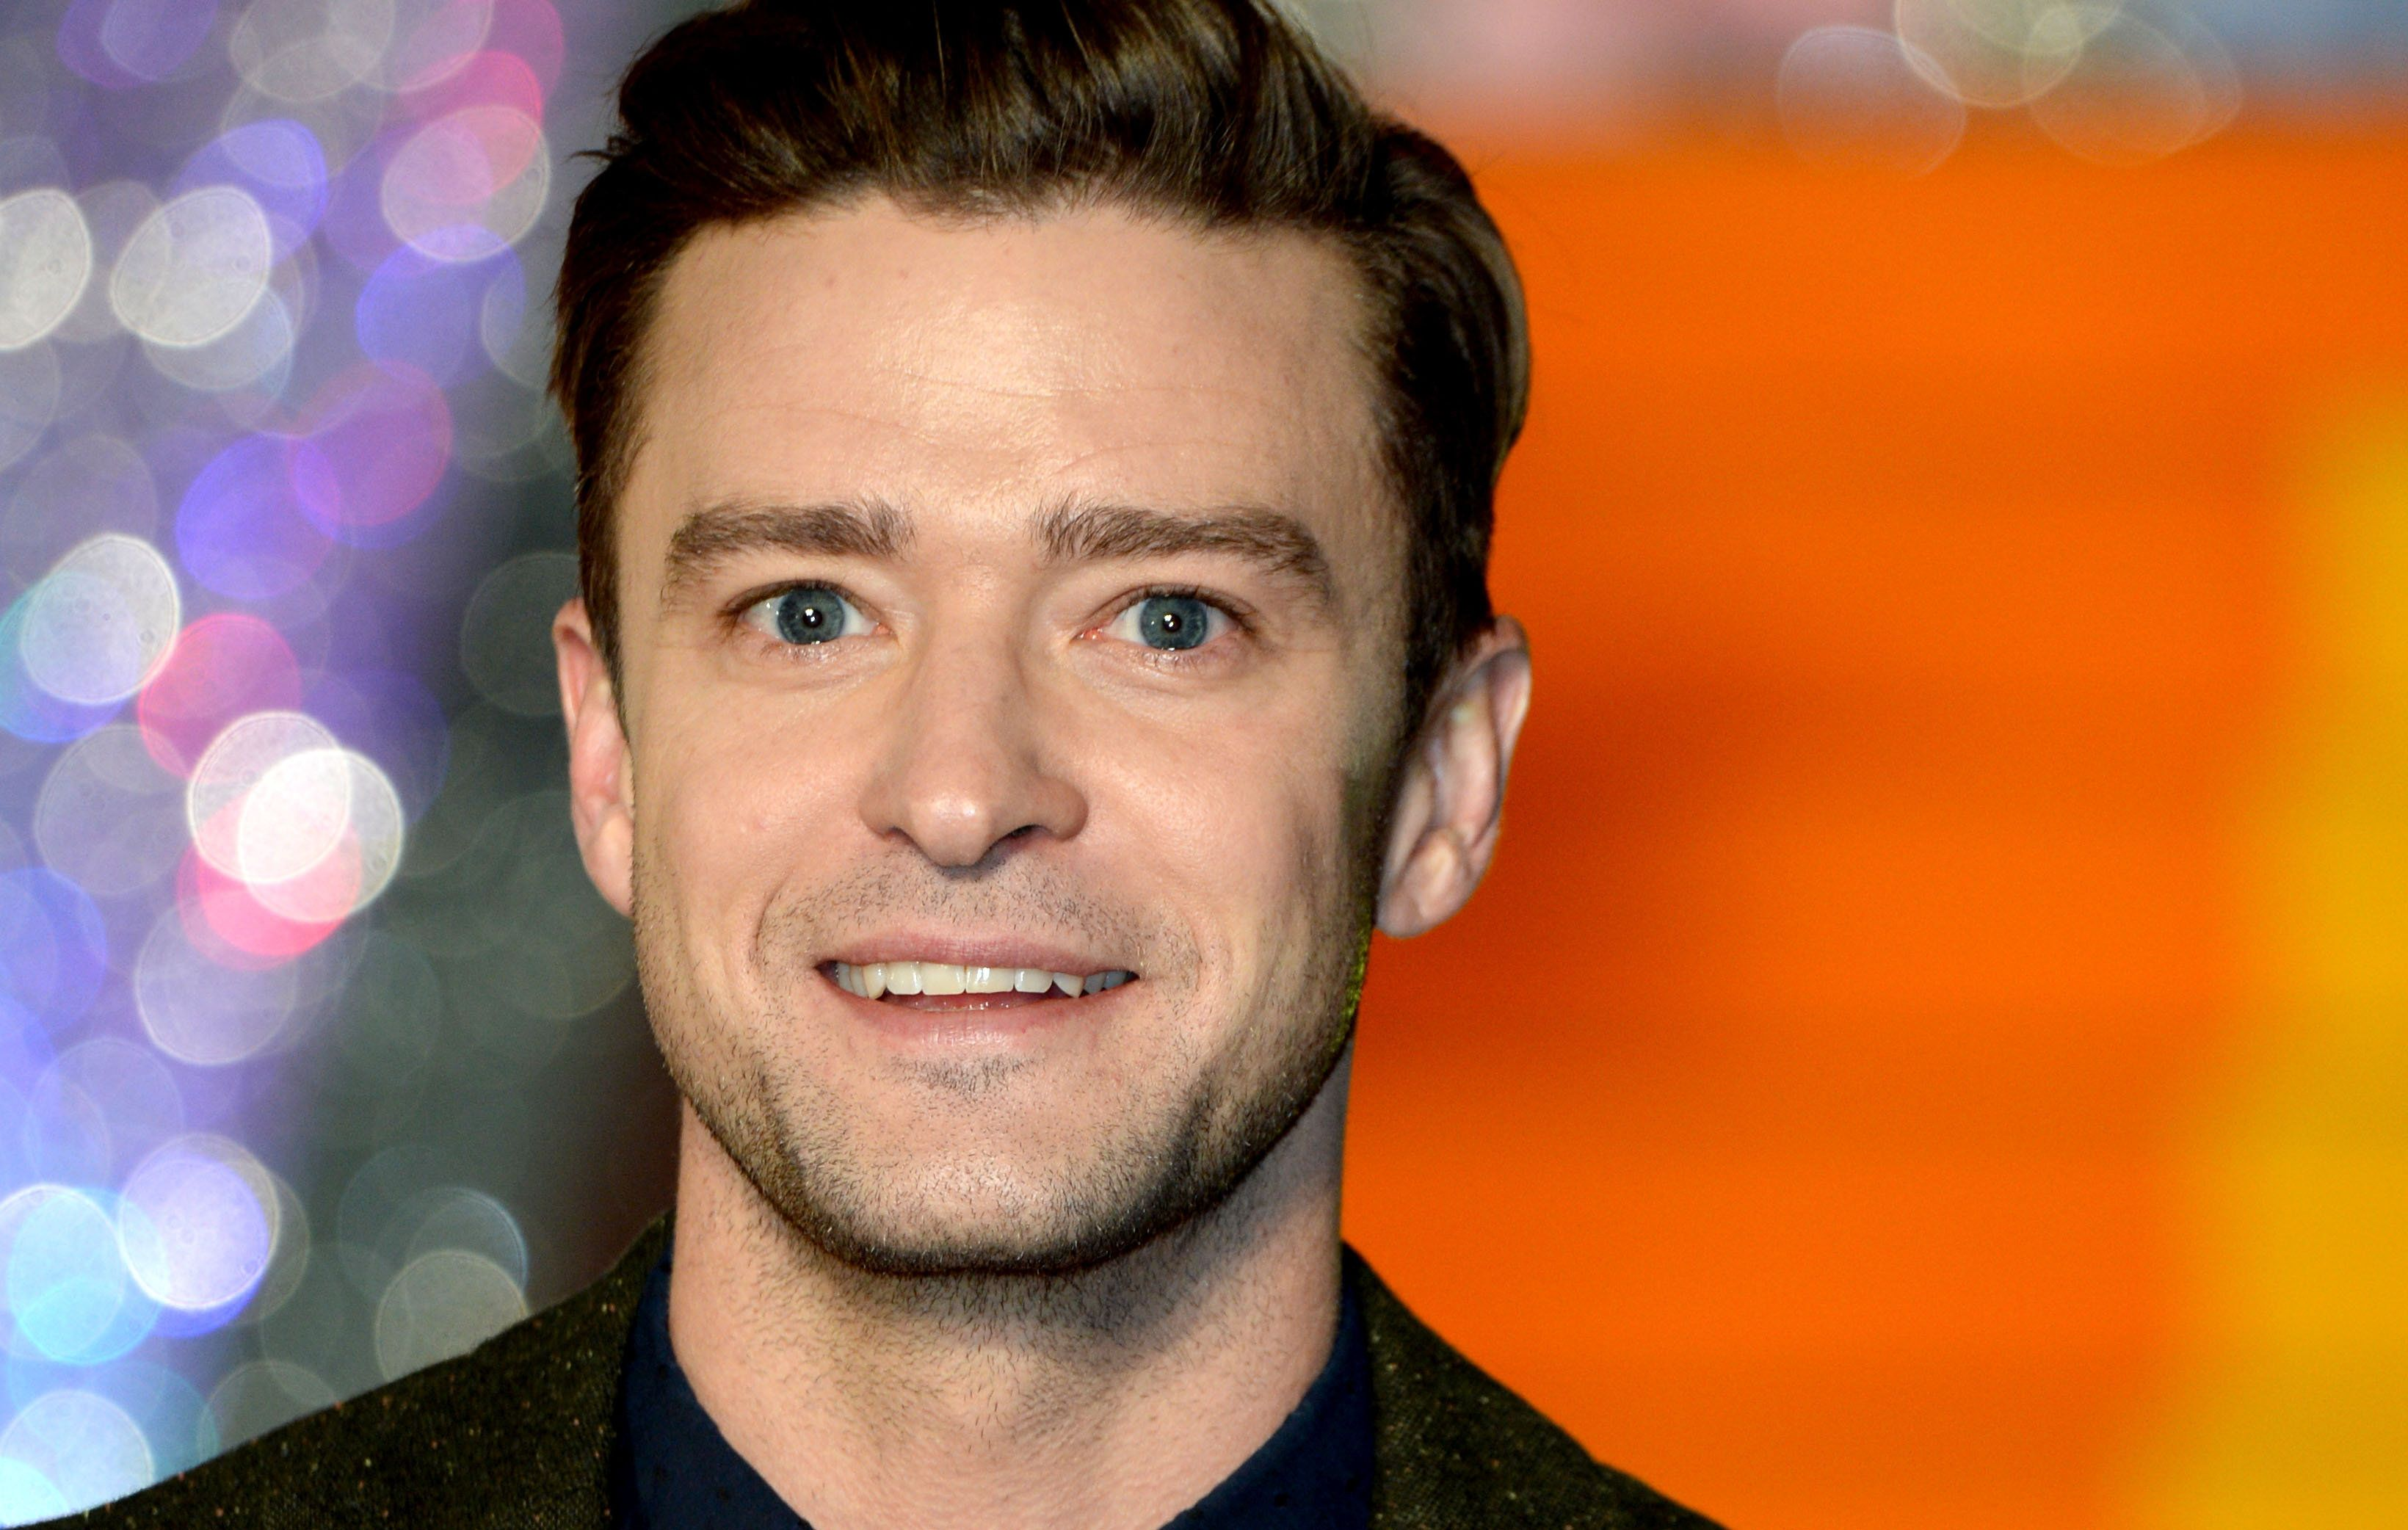 <strong>Justin Timberlake set up a company to purchase real estate in the Bahamas</strong>